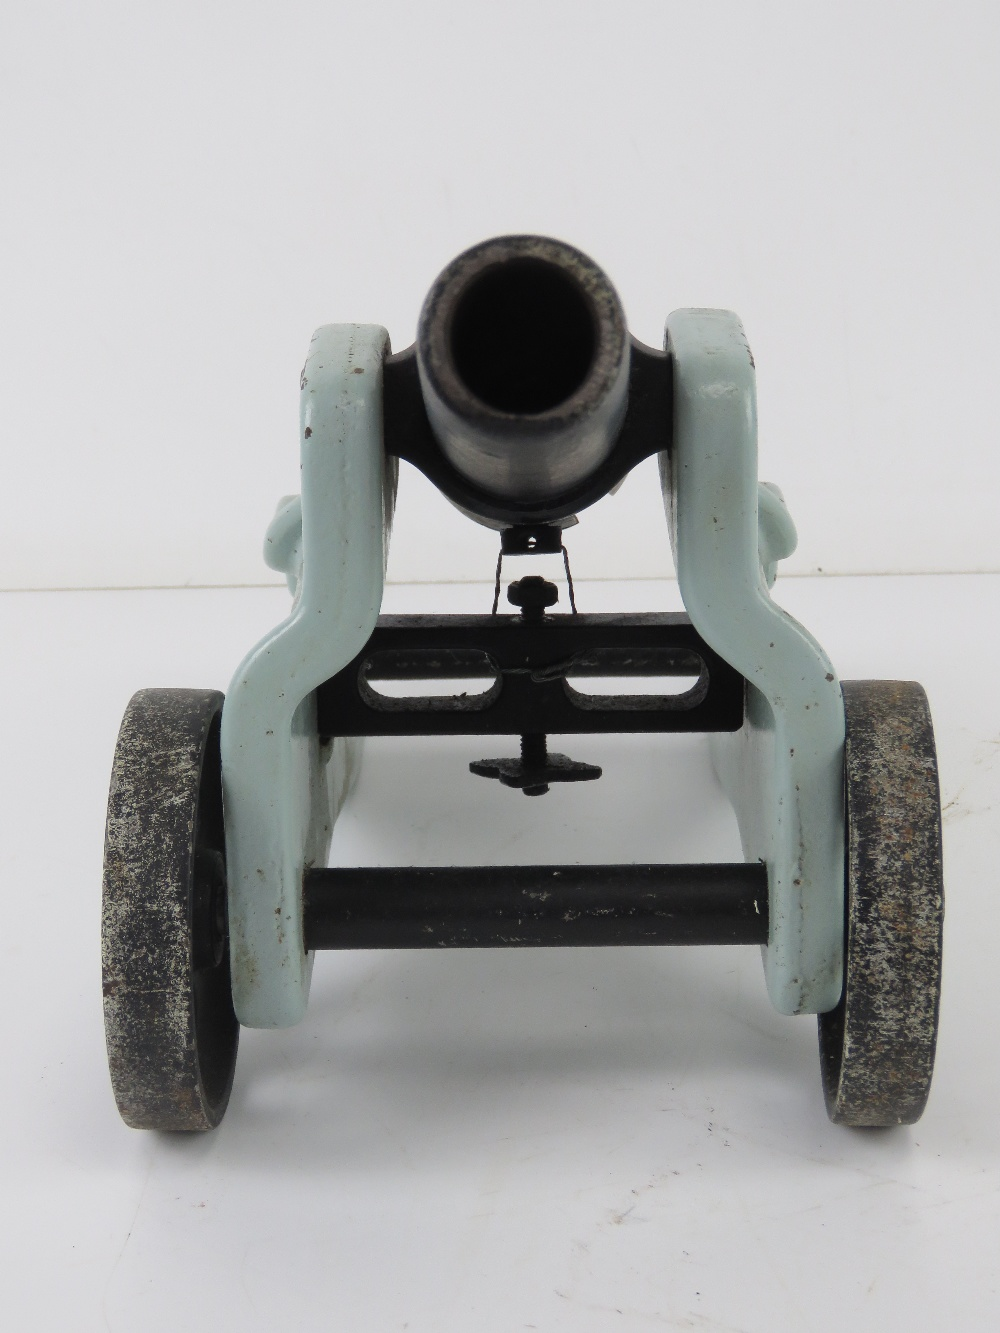 A deactivated Winchester 10 bore signal cannon W.R.A.Co, trademark registered in USA. - Image 3 of 8